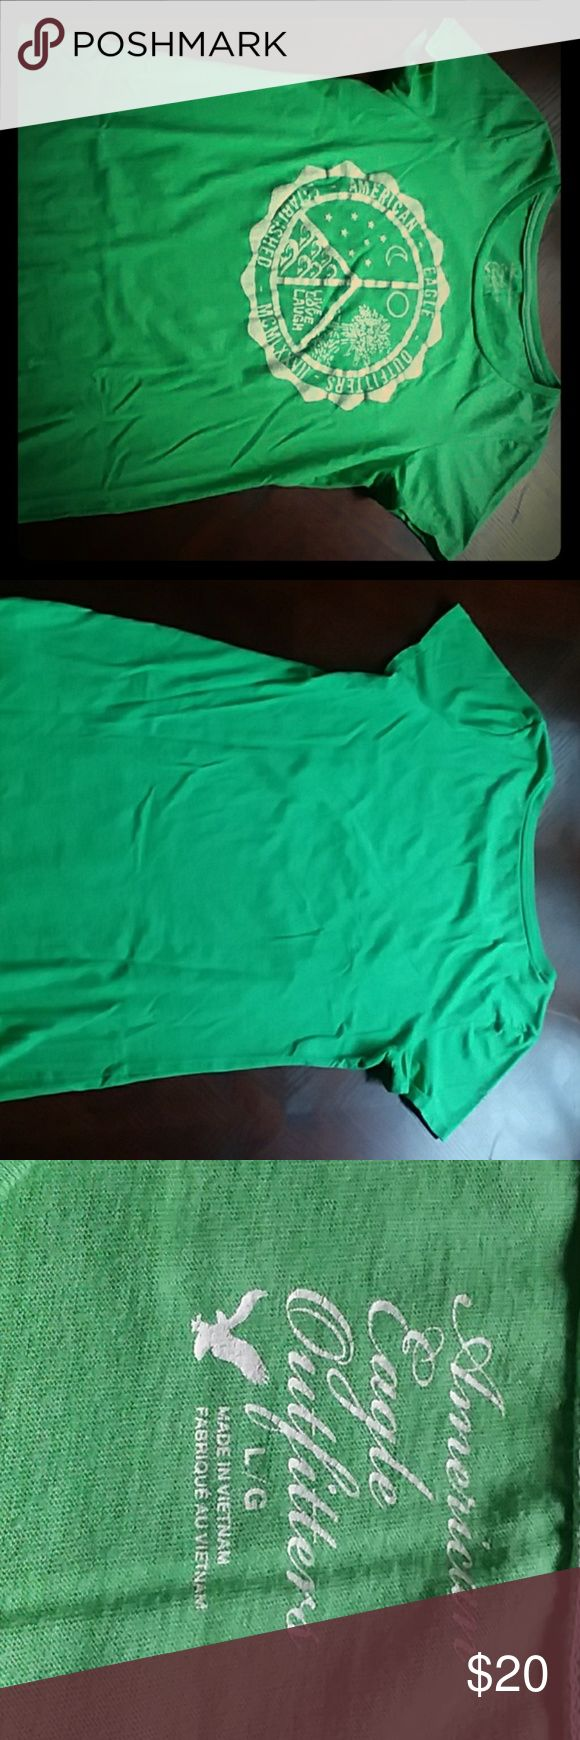 "American Eagle Outfitters Green T-Shirt Size L American Eagle Outfitters green t-shirt with design on the front size L. Like new condition. Verified Measurements are 25"" length and 17"" across the chest. Shirt has been washed and is ready to ship! American Eagle Outfitters Tops Tees - Short Sleeve"